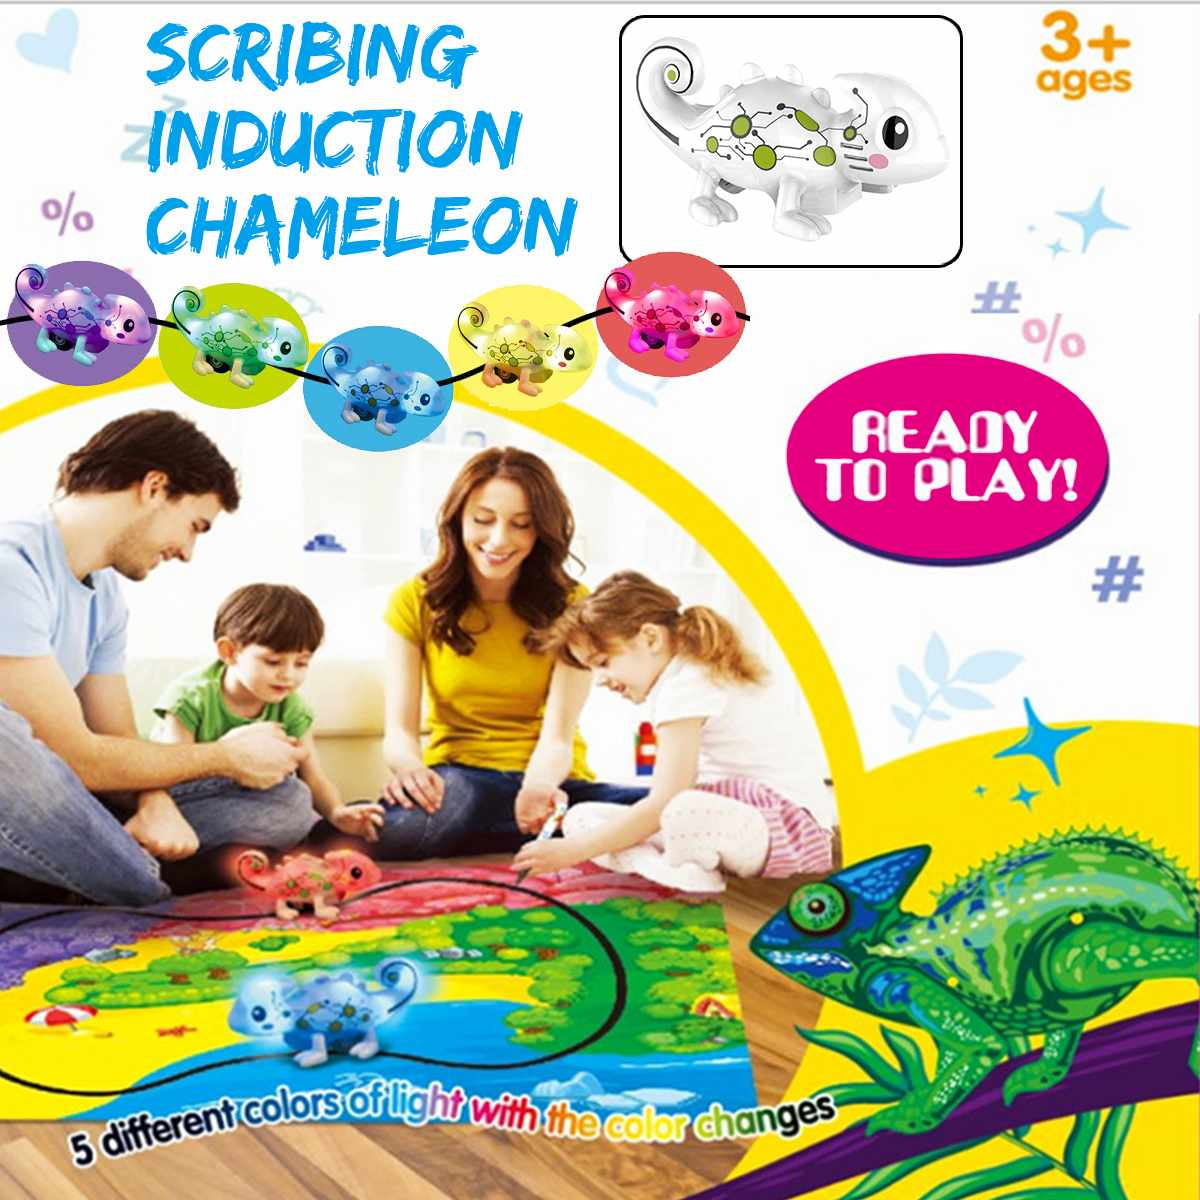 Kids Toys Scribble Pen Induction Chameleon Educational Improve Creativity Follow Robot Music Cute Gift Children Inductive Toy